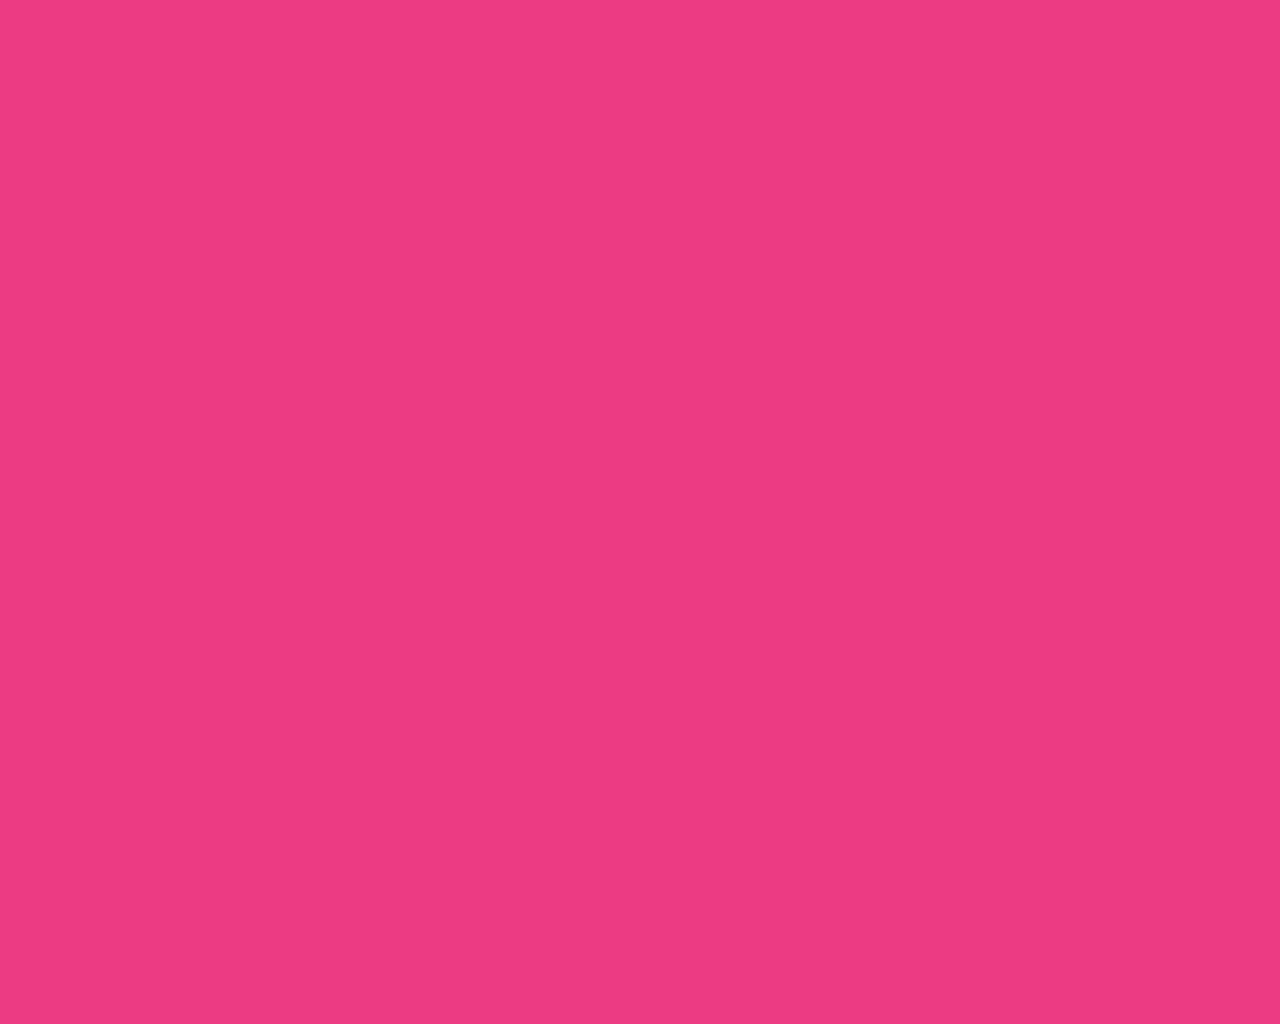 1280x1024 Cerise Pink Solid Color Background 1280x1024